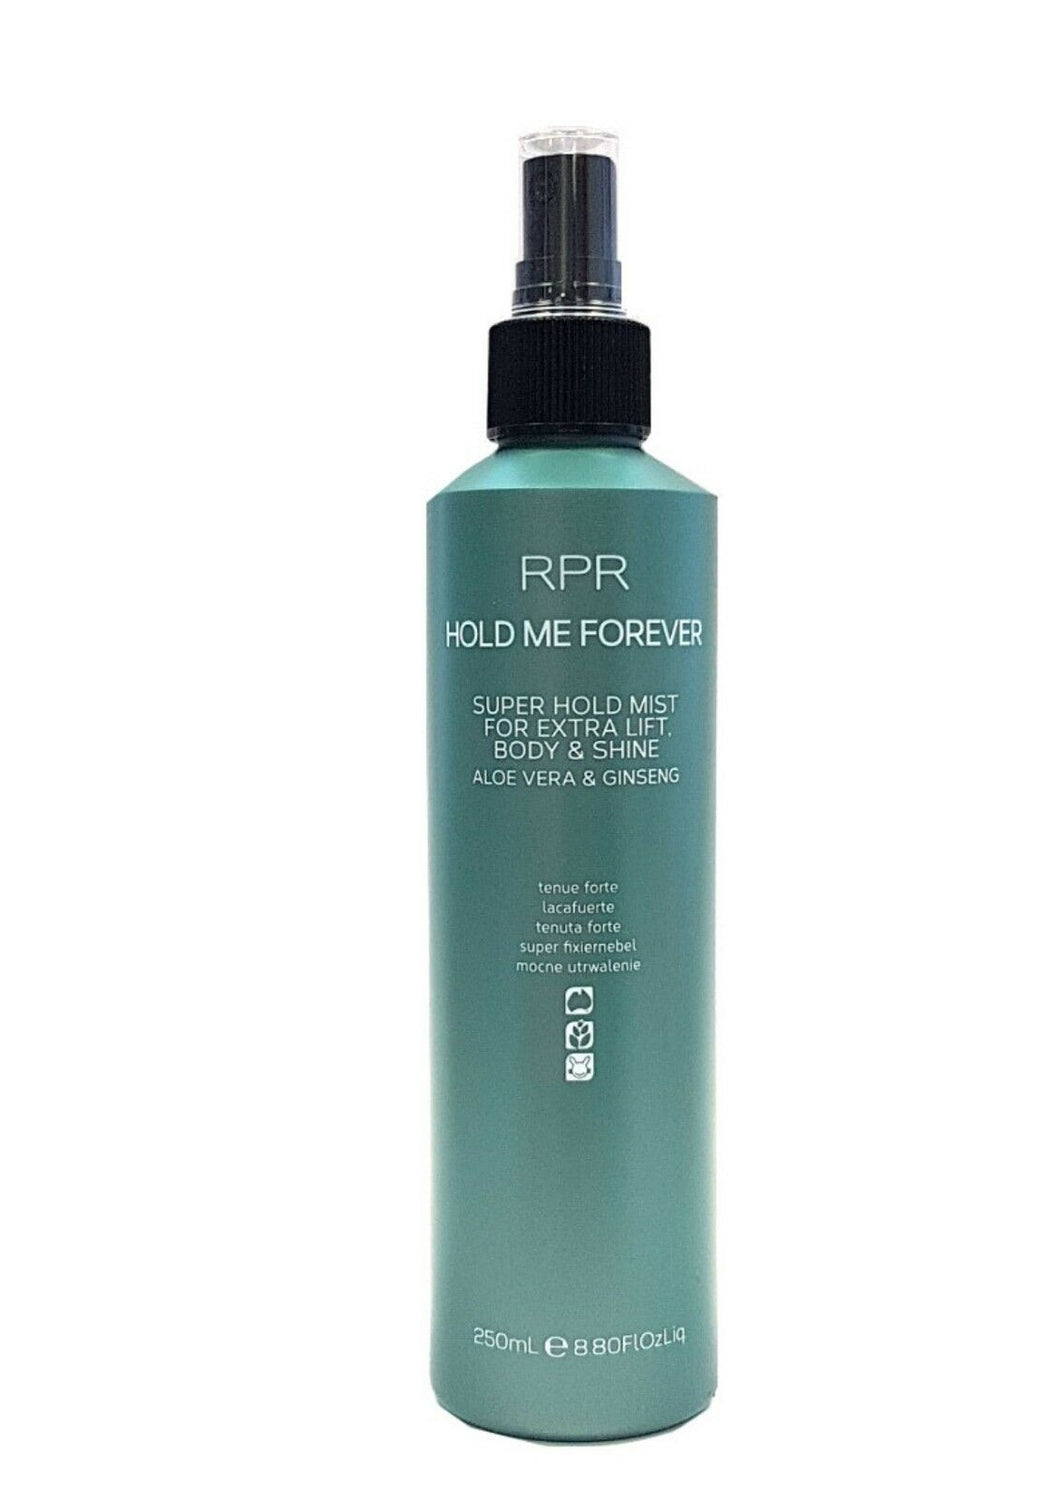 iaahhaircare,RPR Hold Me Forever 1 x 250ml Hair Styling Spray Strong Hold Lift Body,Styling Products,Styling RPR